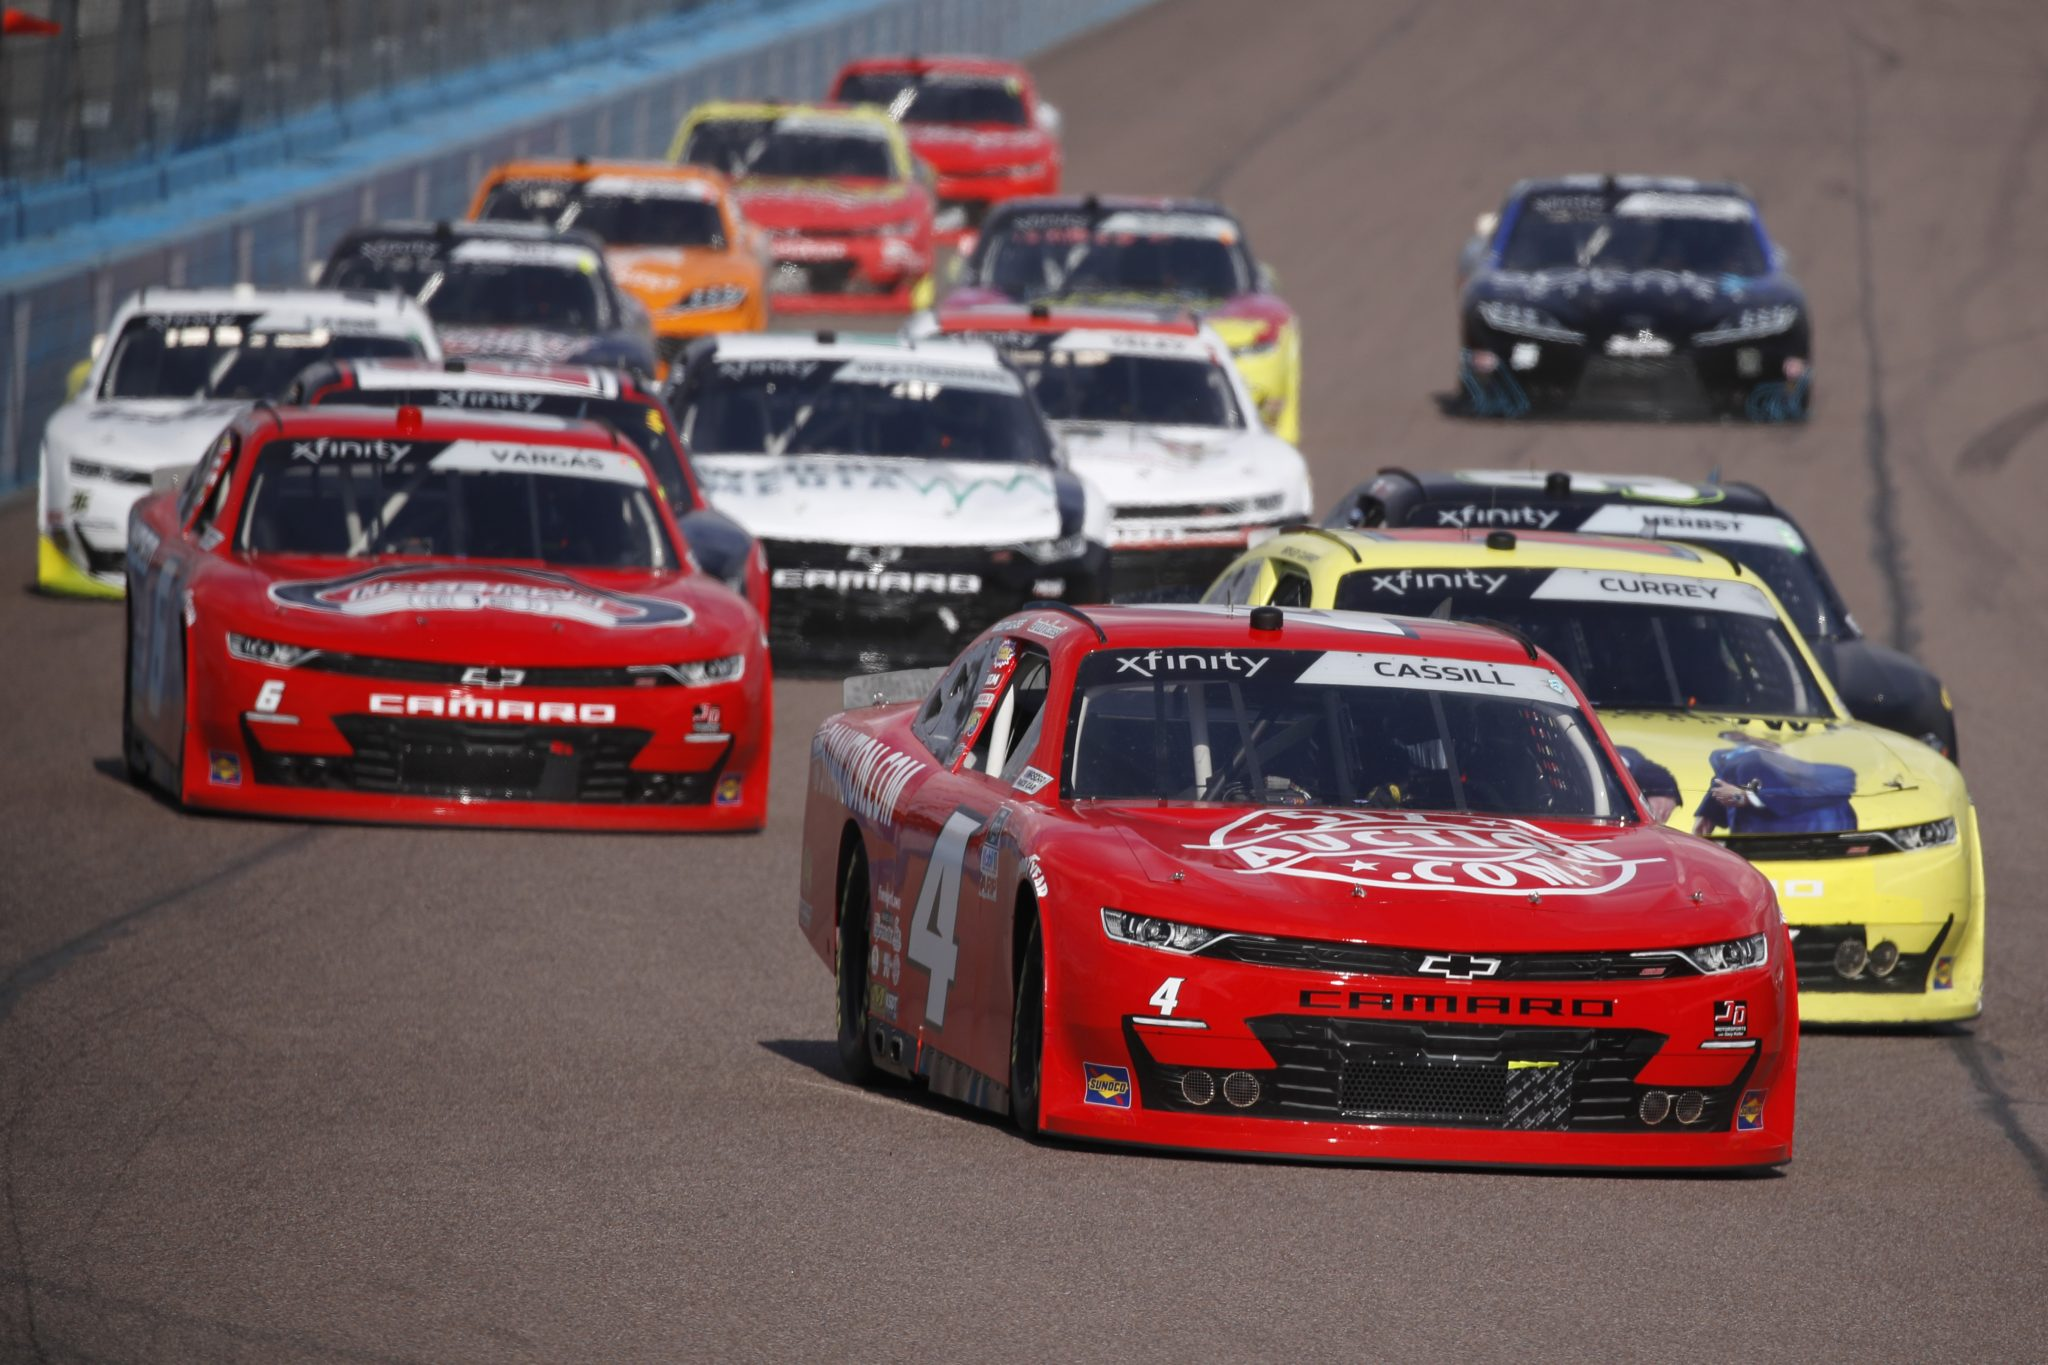 AVONDALE, ARIZONA - MARCH 13: Landon Cassill, driver of the #4 511Auction.com Chevrolet, leads the field during the NASCAR Xfinity Series Call 811 Before You Dig 200 presented by Arizona 811 at Phoenix Raceway on March 13, 2021 in Avondale, Arizona. (Photo by Christian Petersen/Getty Images) | Getty Images